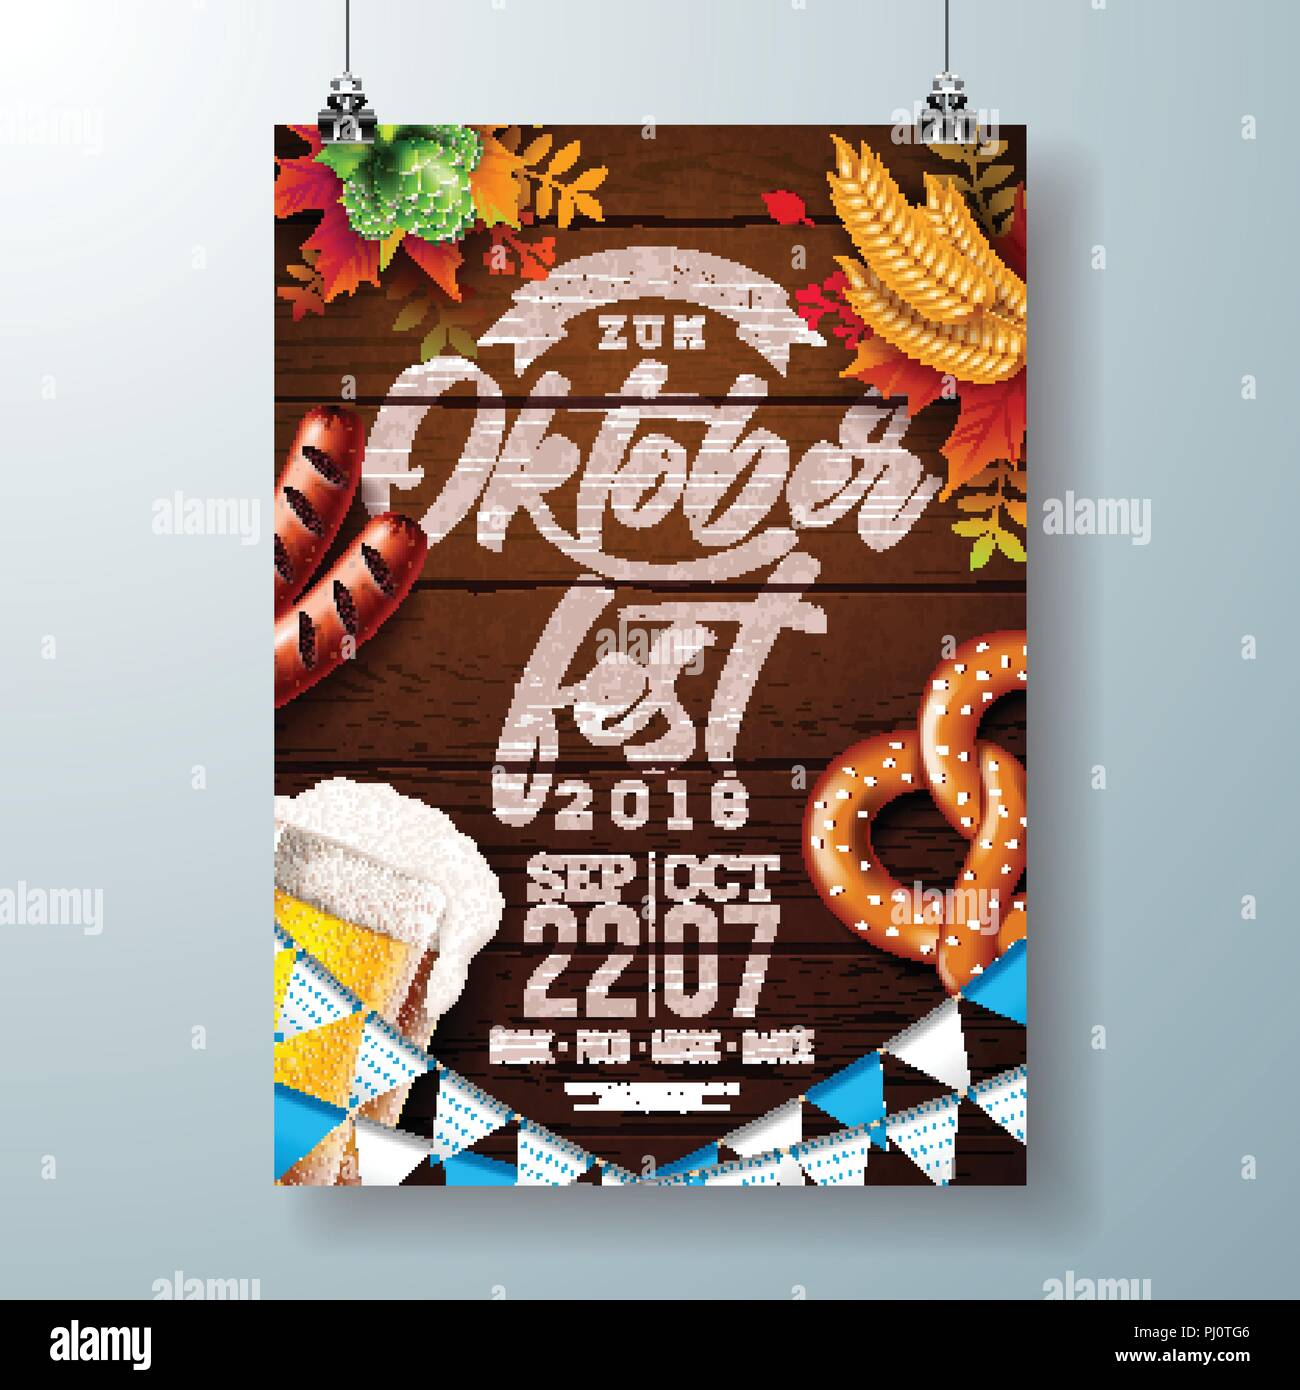 Oktoberfest party poster vector illustration with typography